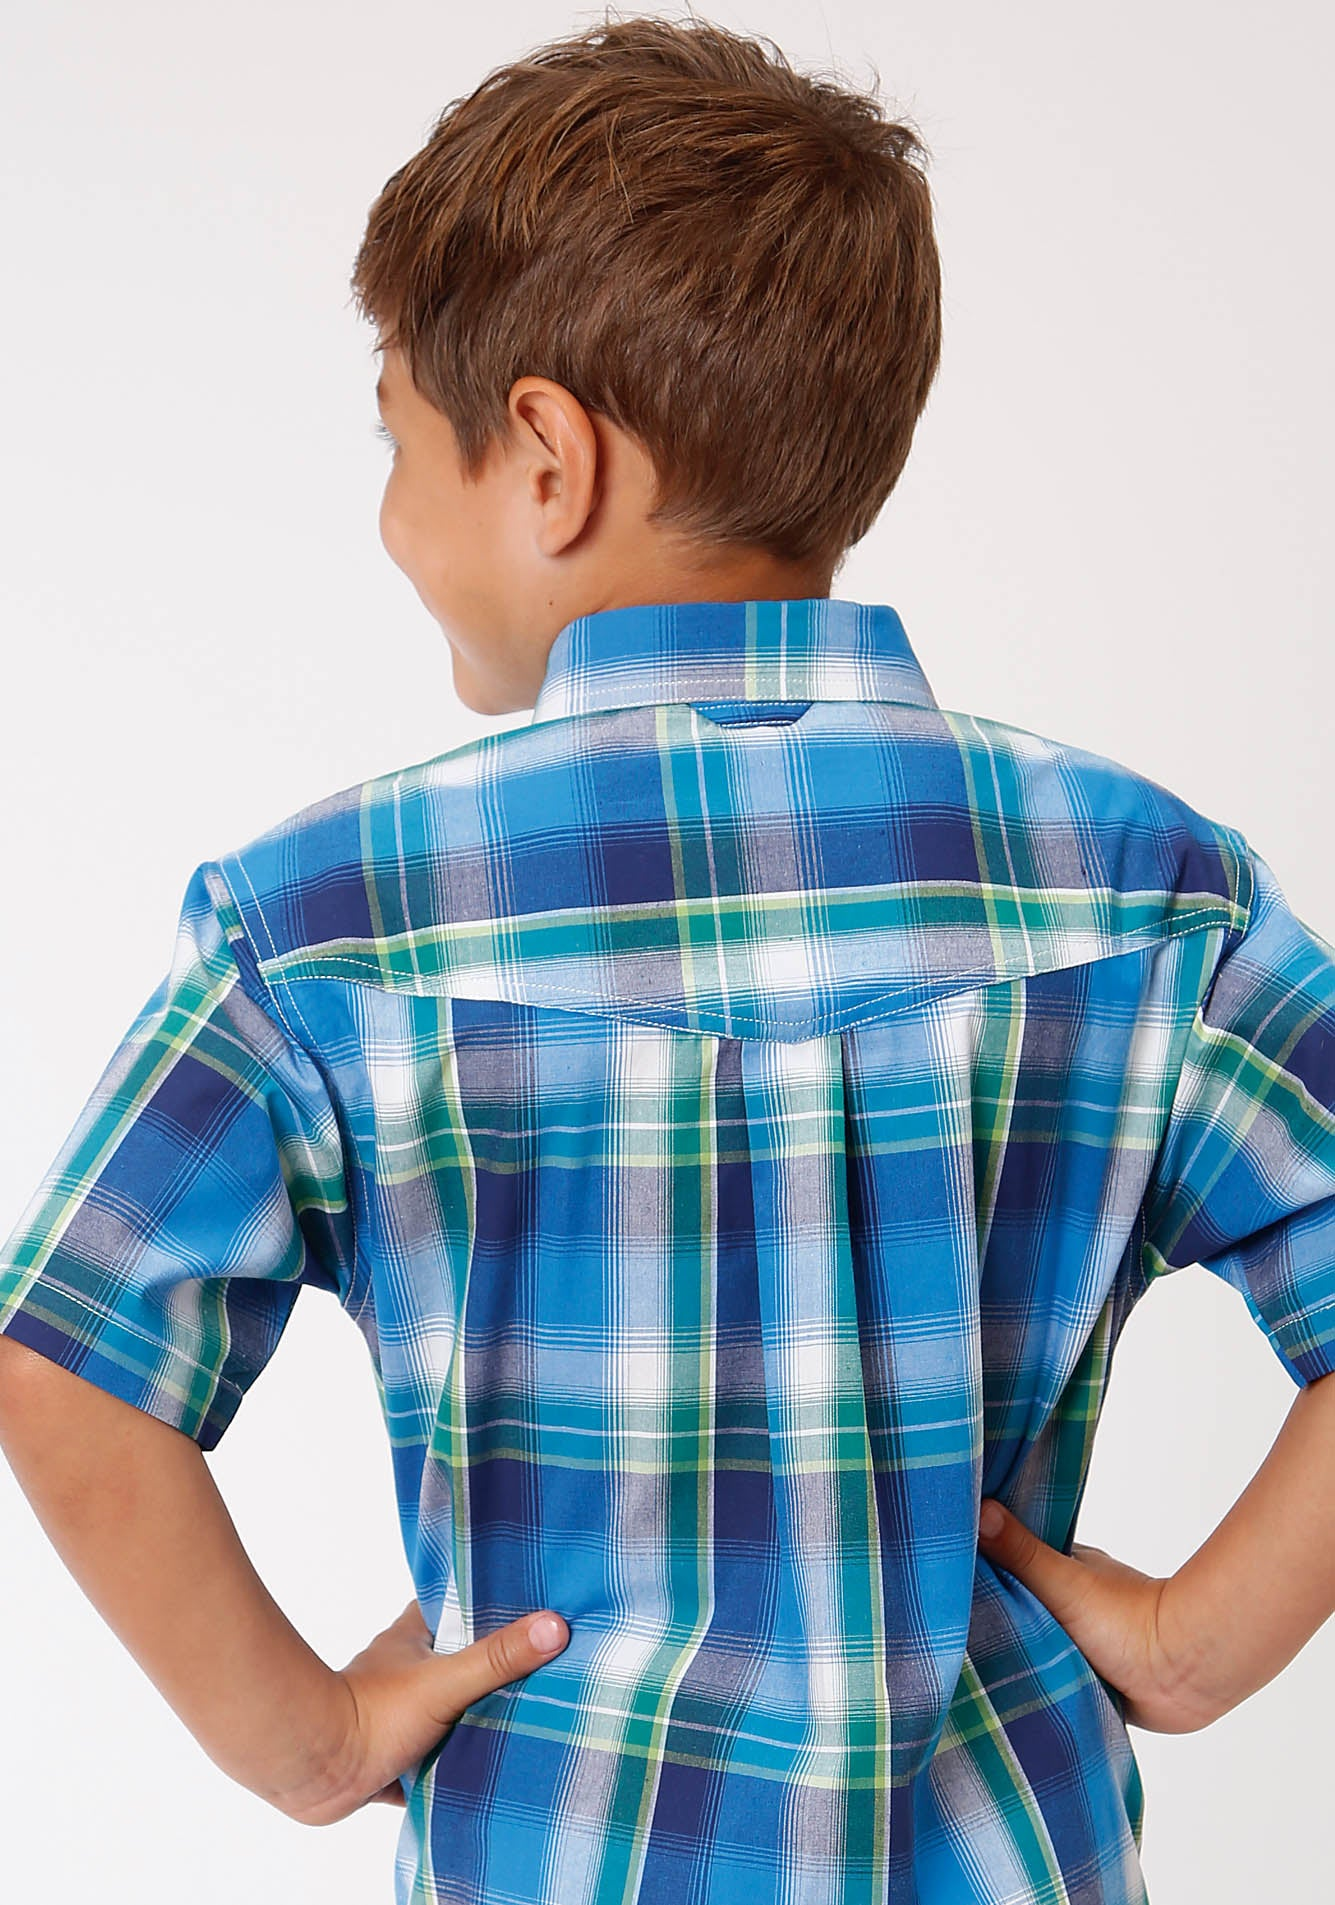 ROPER BOYS BLUE 00157 WATER PLAID BOY'S AMARILLO COLLECTION - BLUE RIDGE SHORT SLEEVE